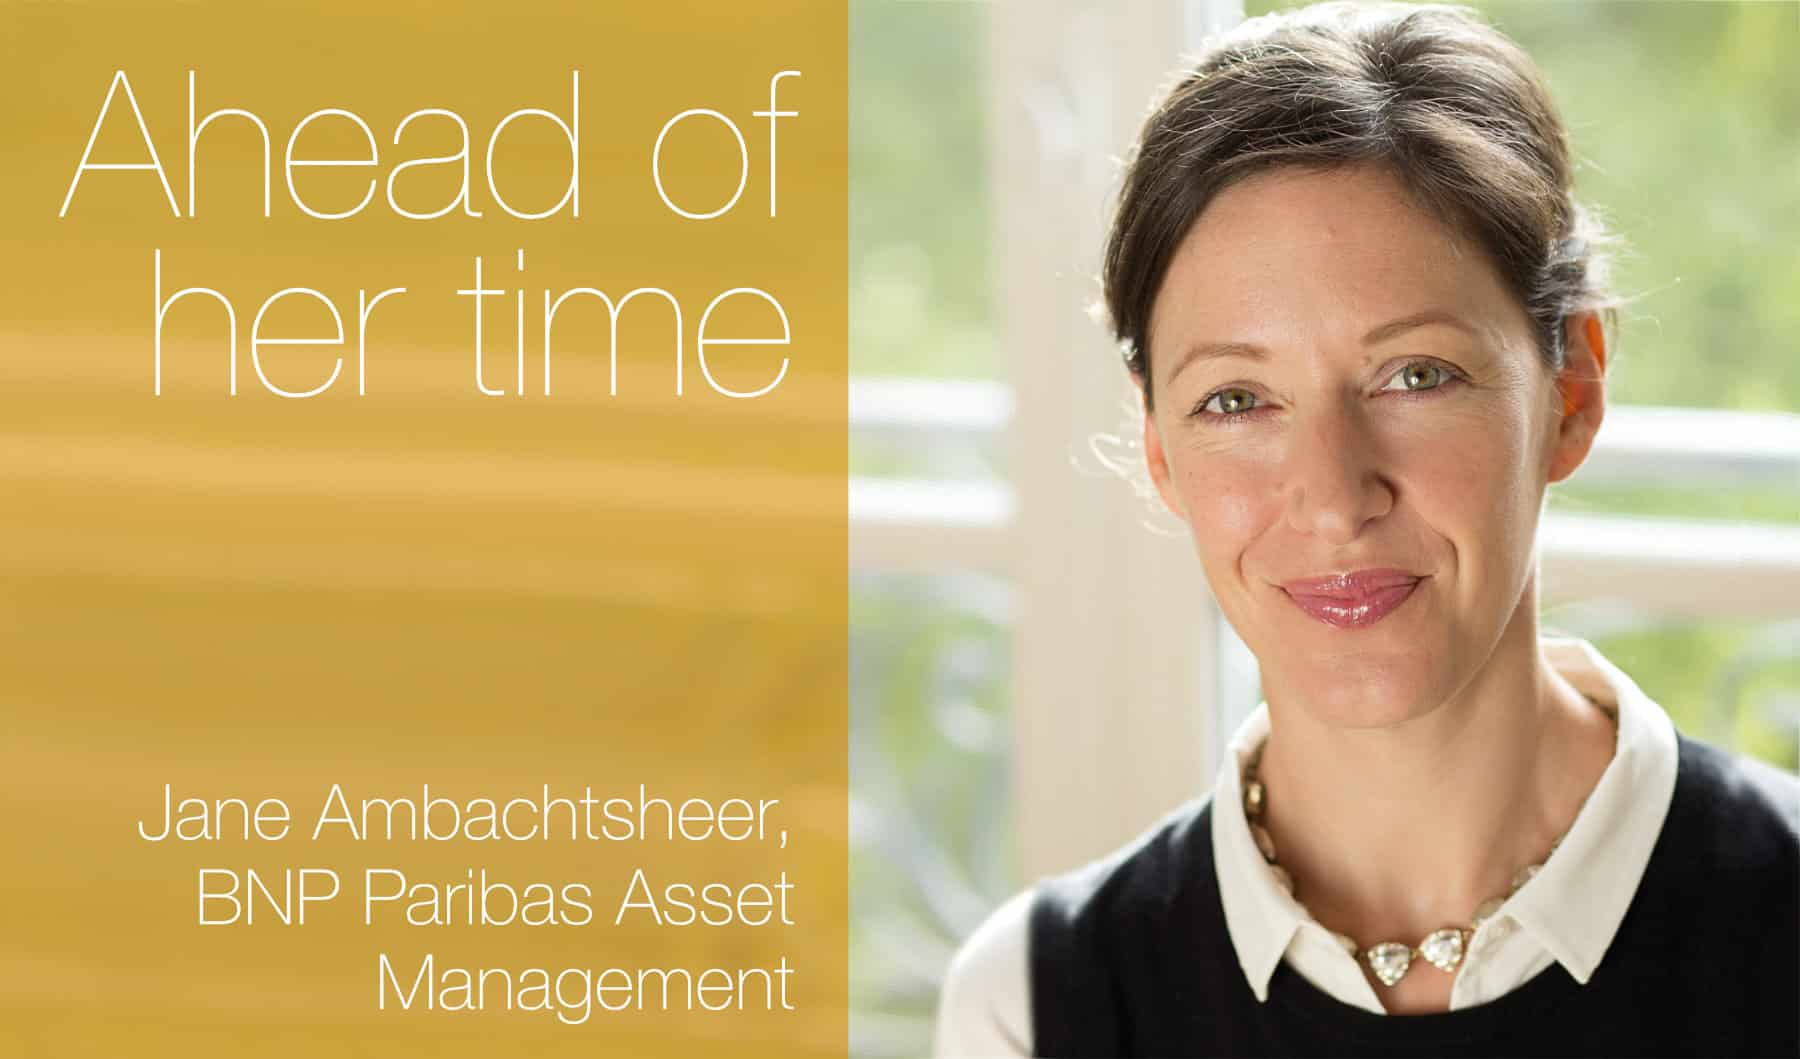 European Women in Finance : Jane Ambachtsheer : Ahead of her time